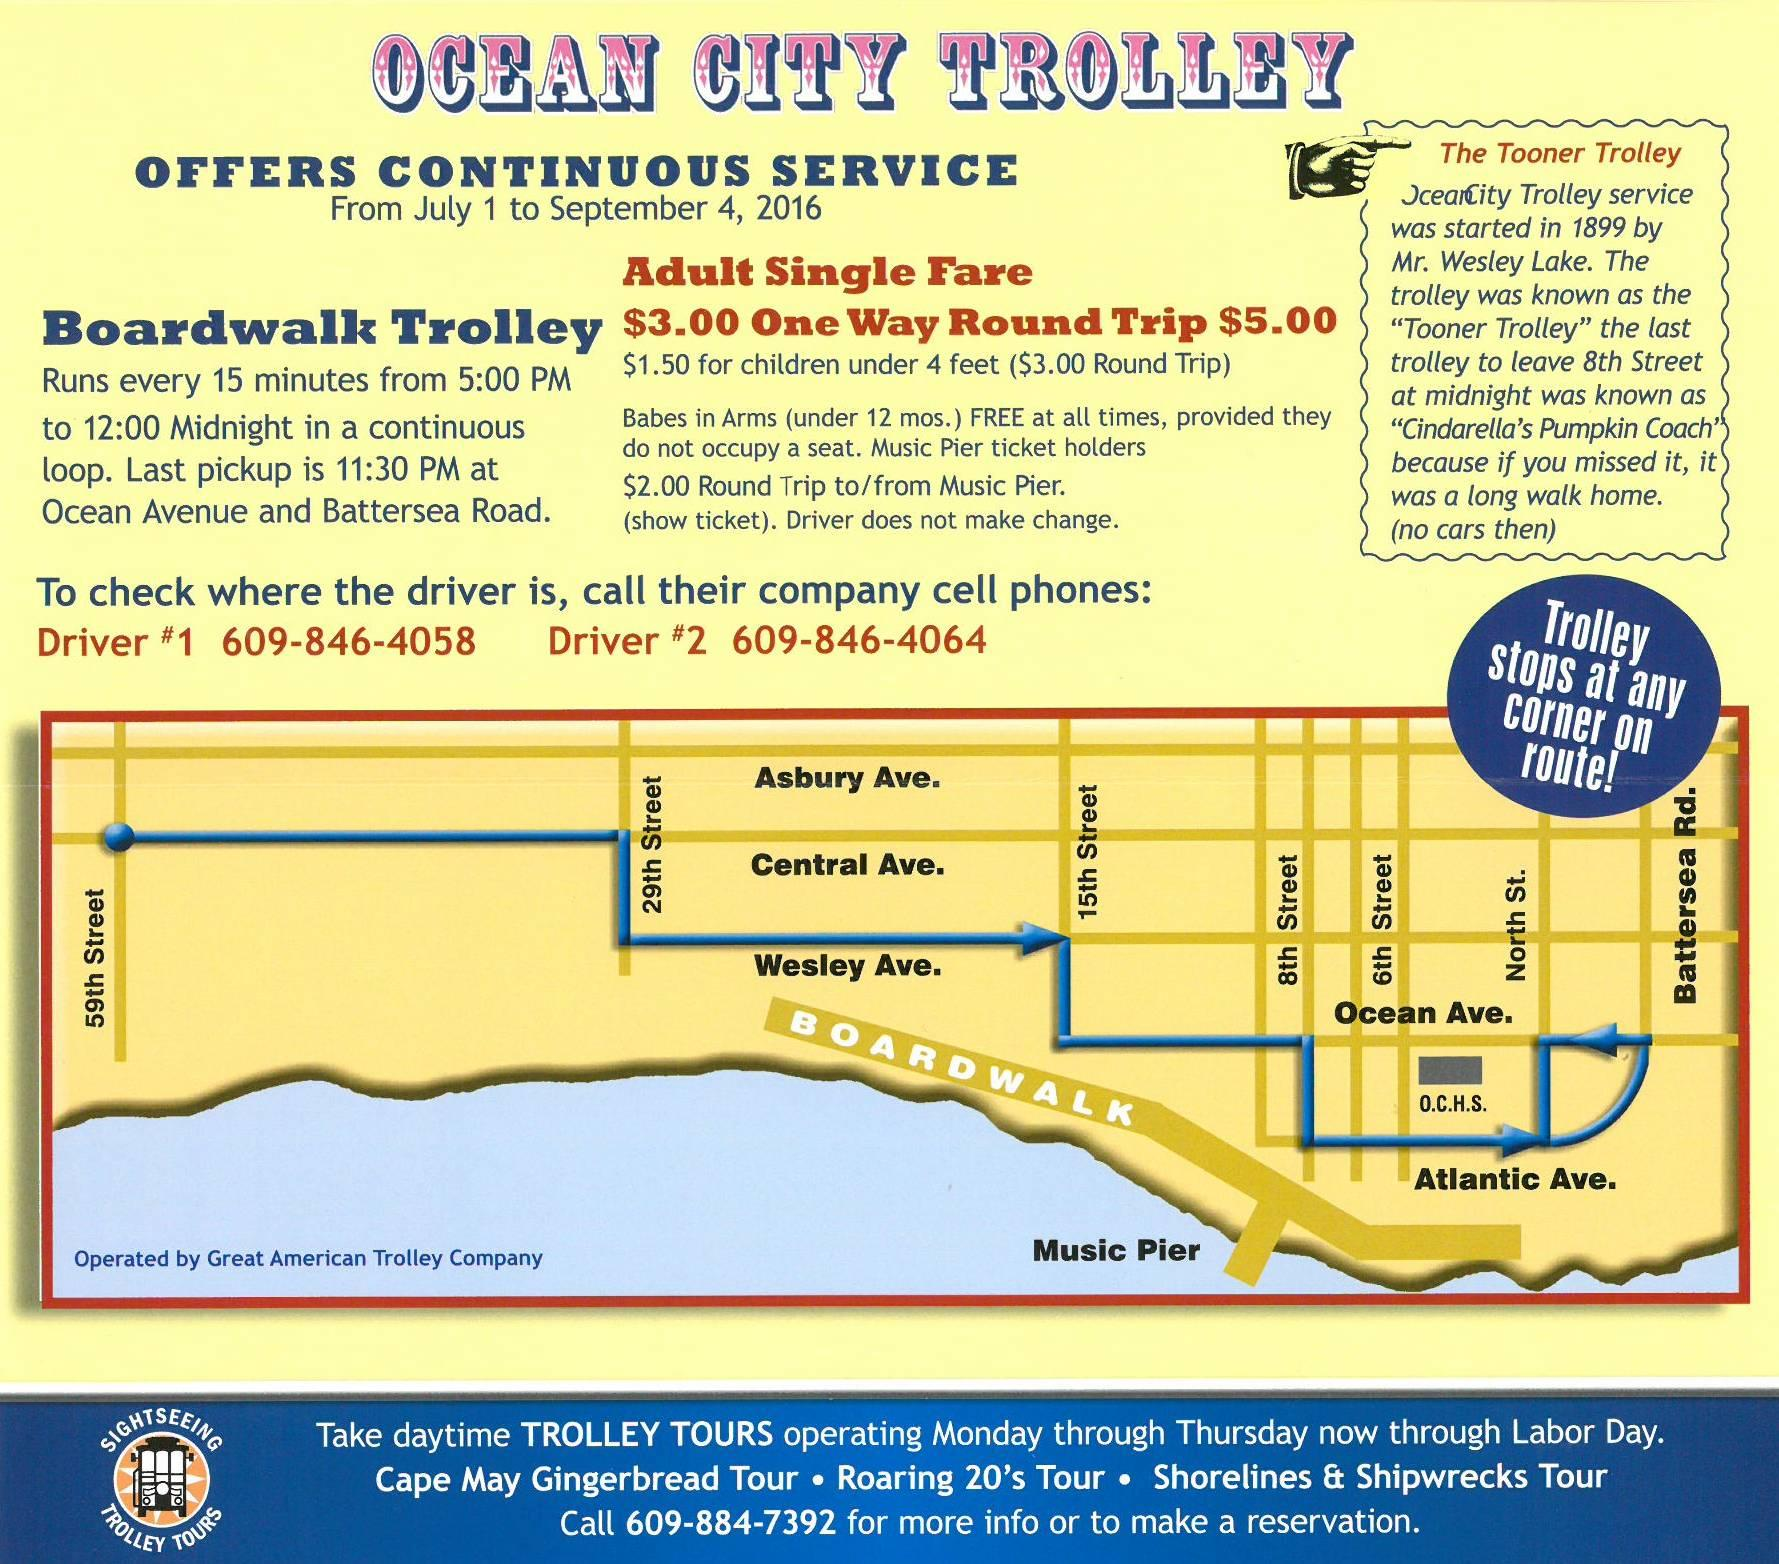 Tide chart for ocean city nj gallery free any chart examples ocean city trolley service starts on july 1 nvjuhfo gallery nvjuhfo Images